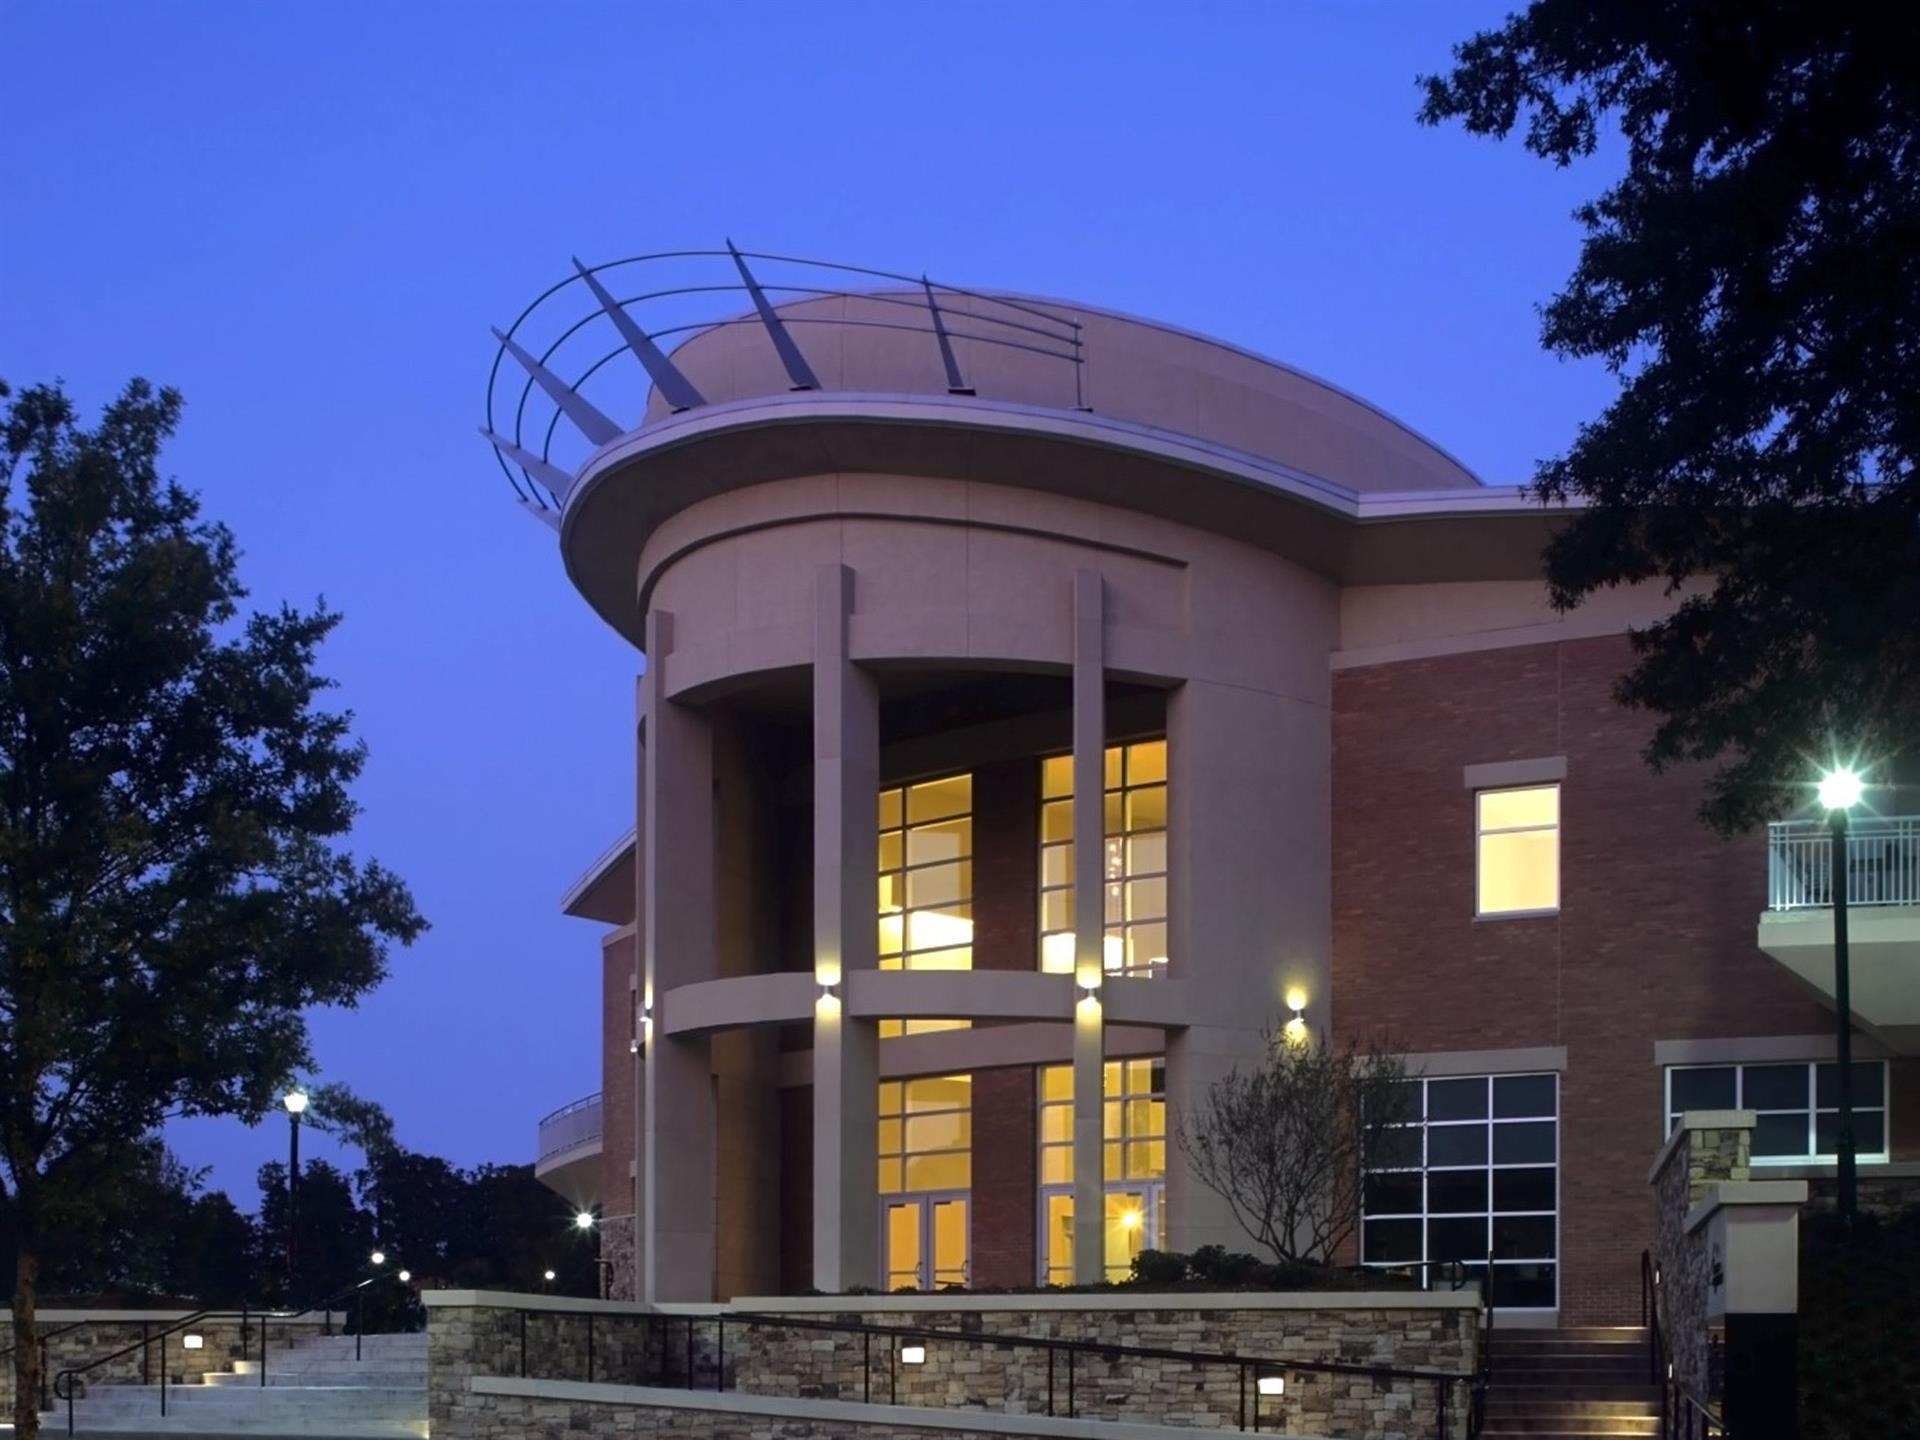 Outside of grand entrance during the evening with lights and floor to ceiling windows with big columns.